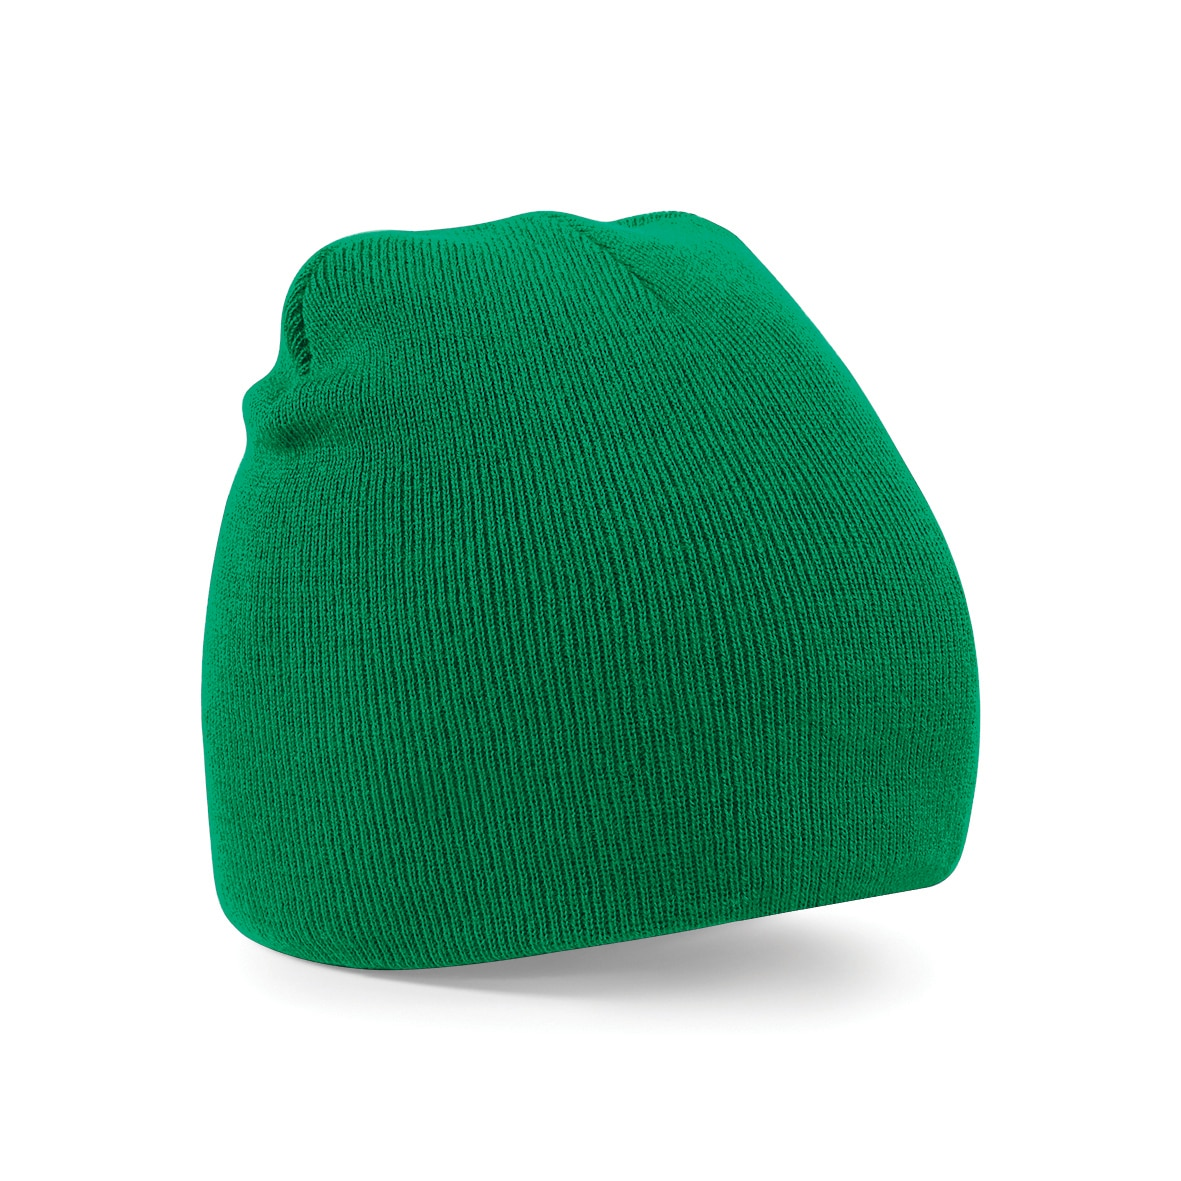 Kelly Green Embroidered Personalised Beanies from Jageto Embroidery and Print in Essex, UK